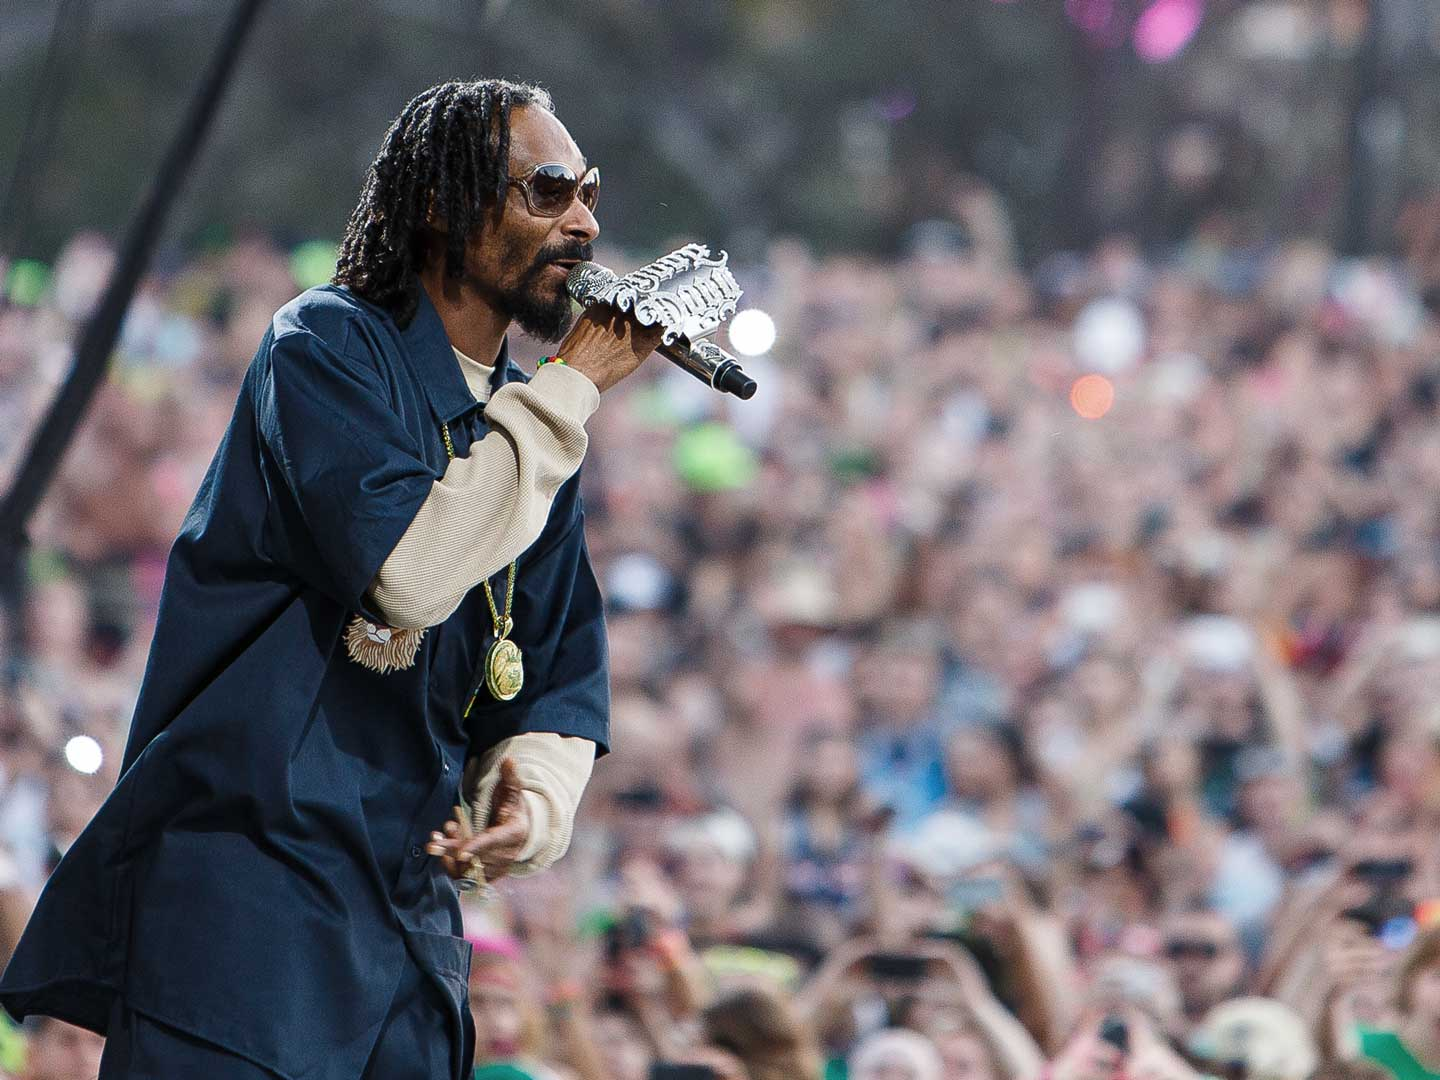 Snoop Dogg performing live